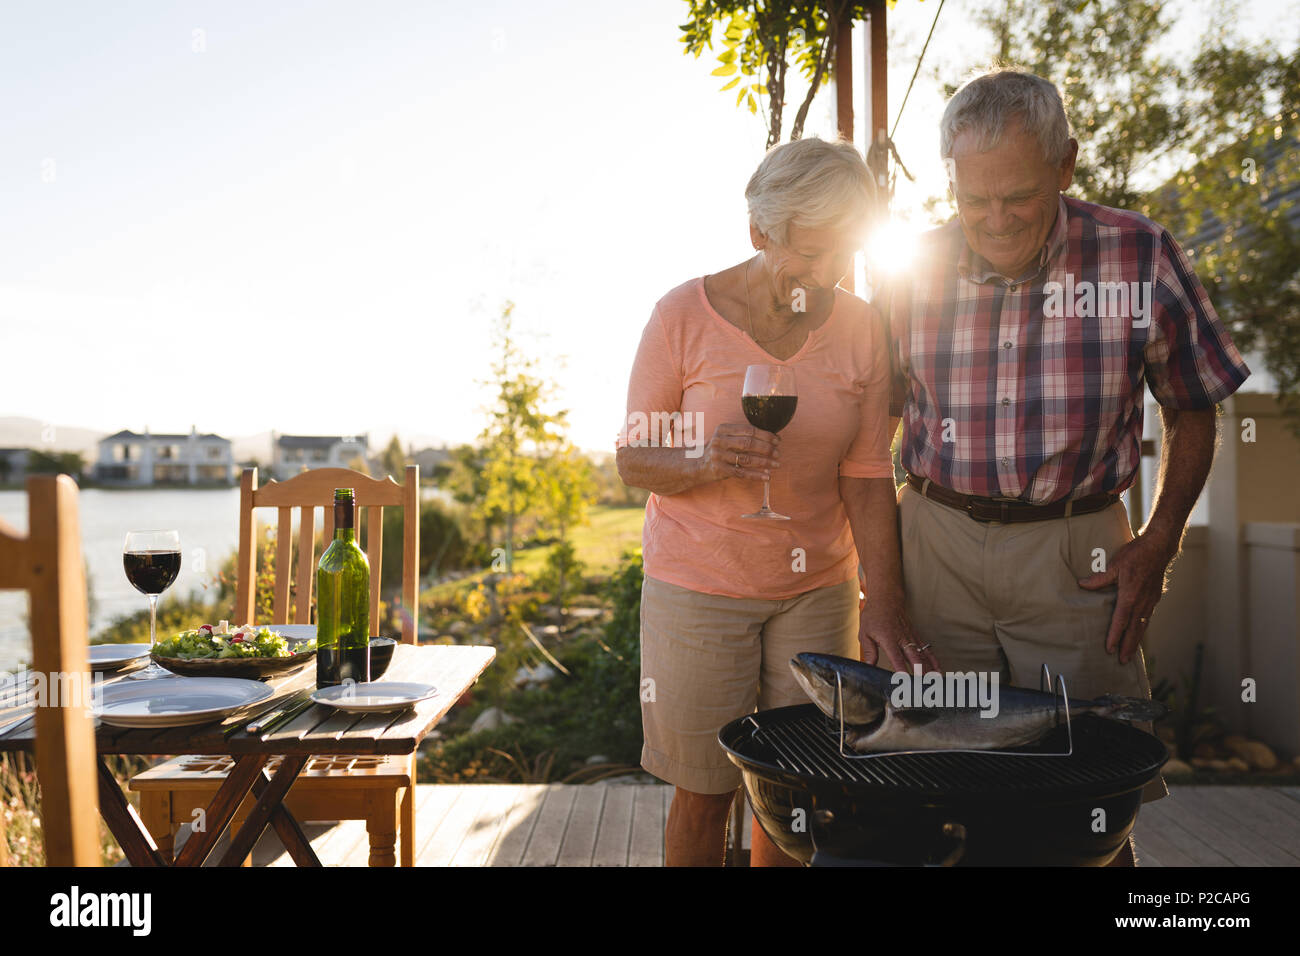 Senior couple cooking fish on barbeque - Stock Image